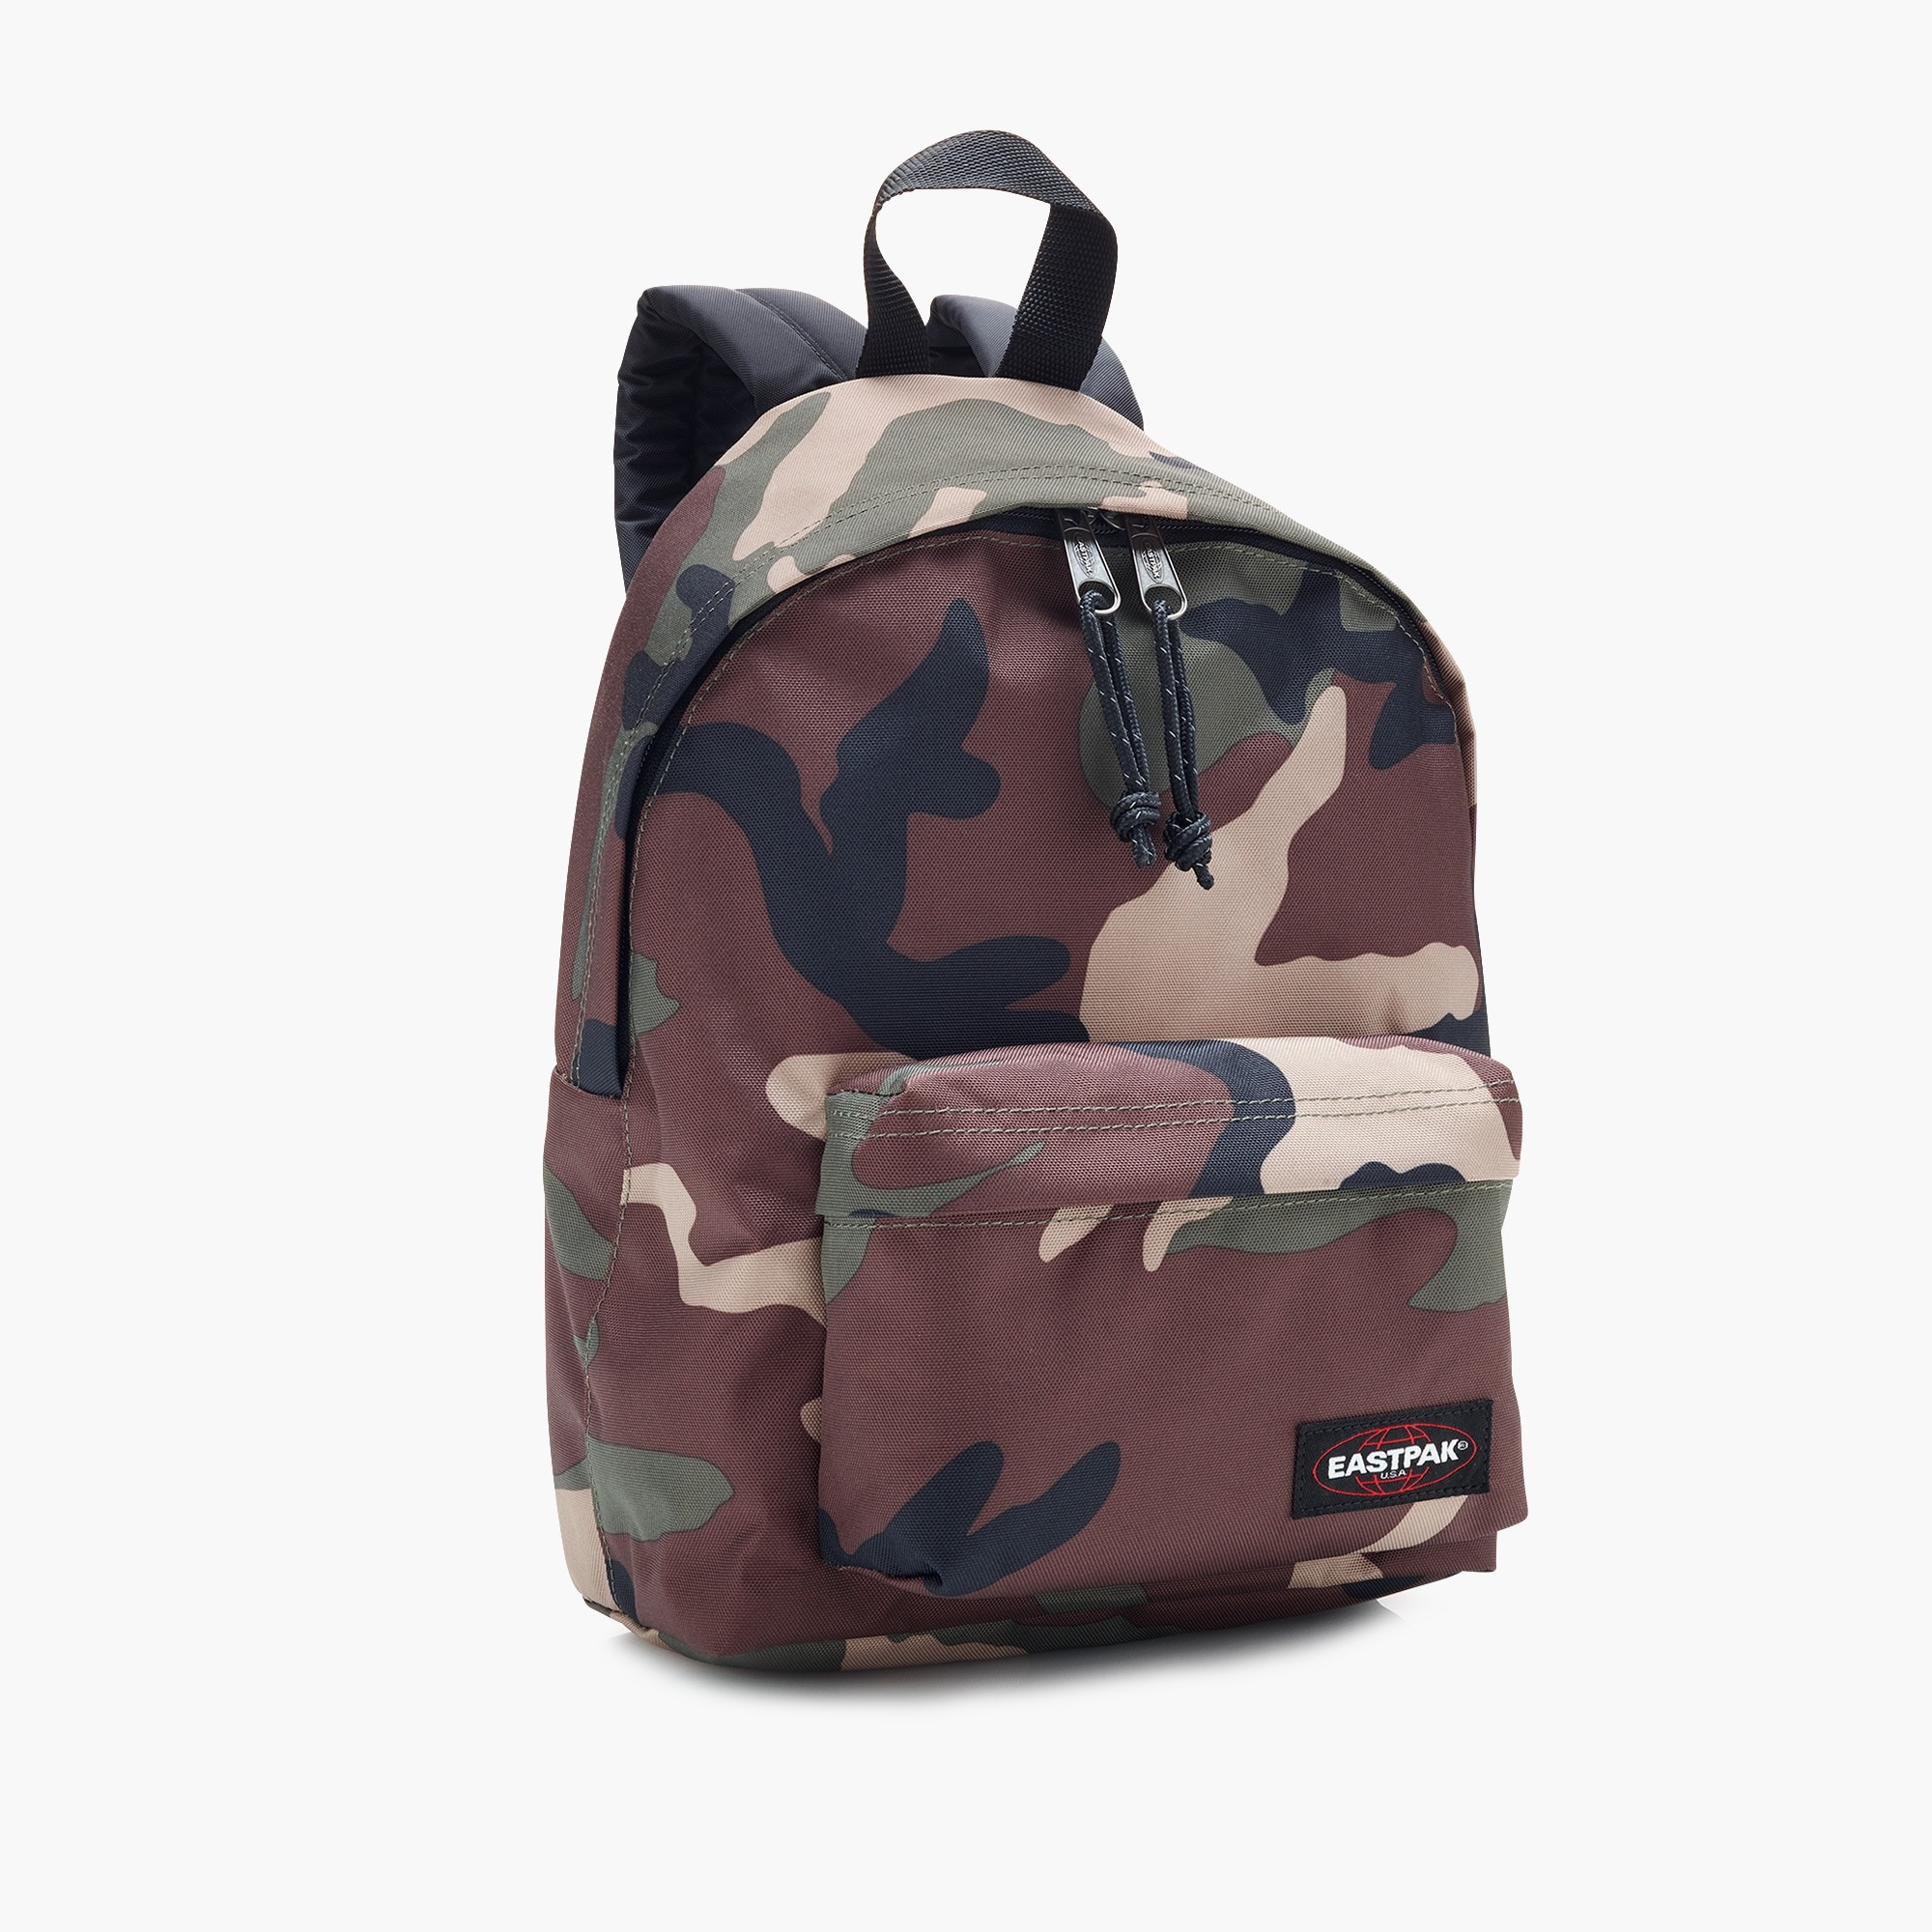 Image 3 for Eastpak® orbit backpack